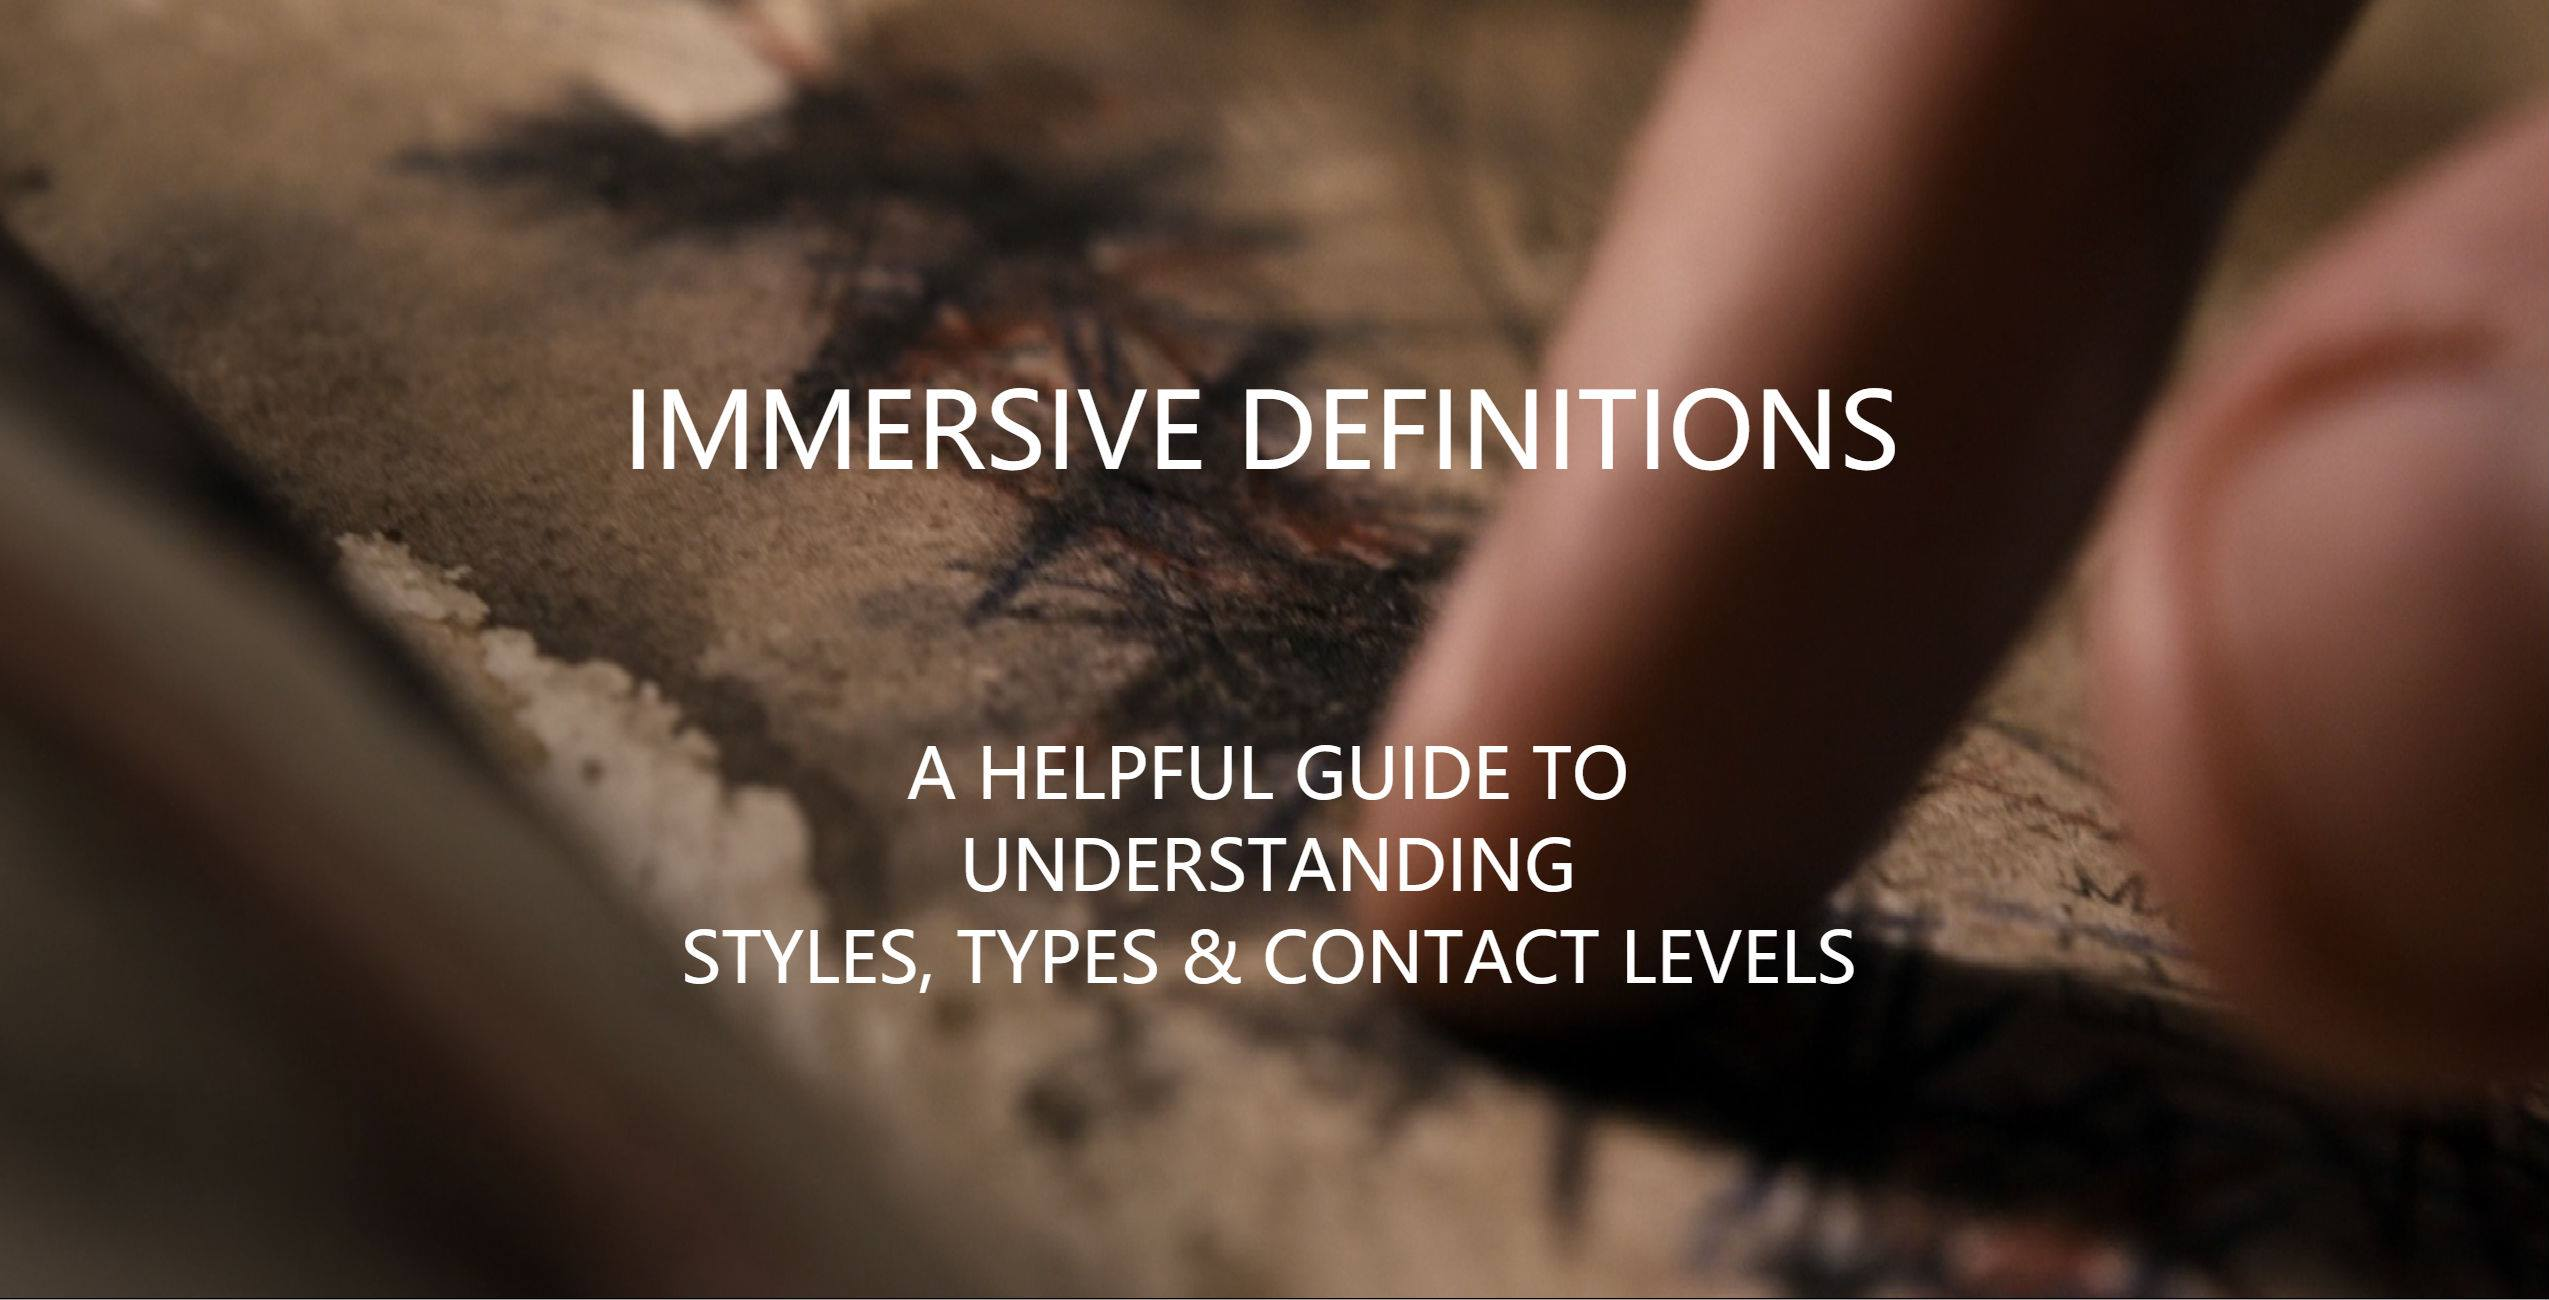 Immersive Definitions